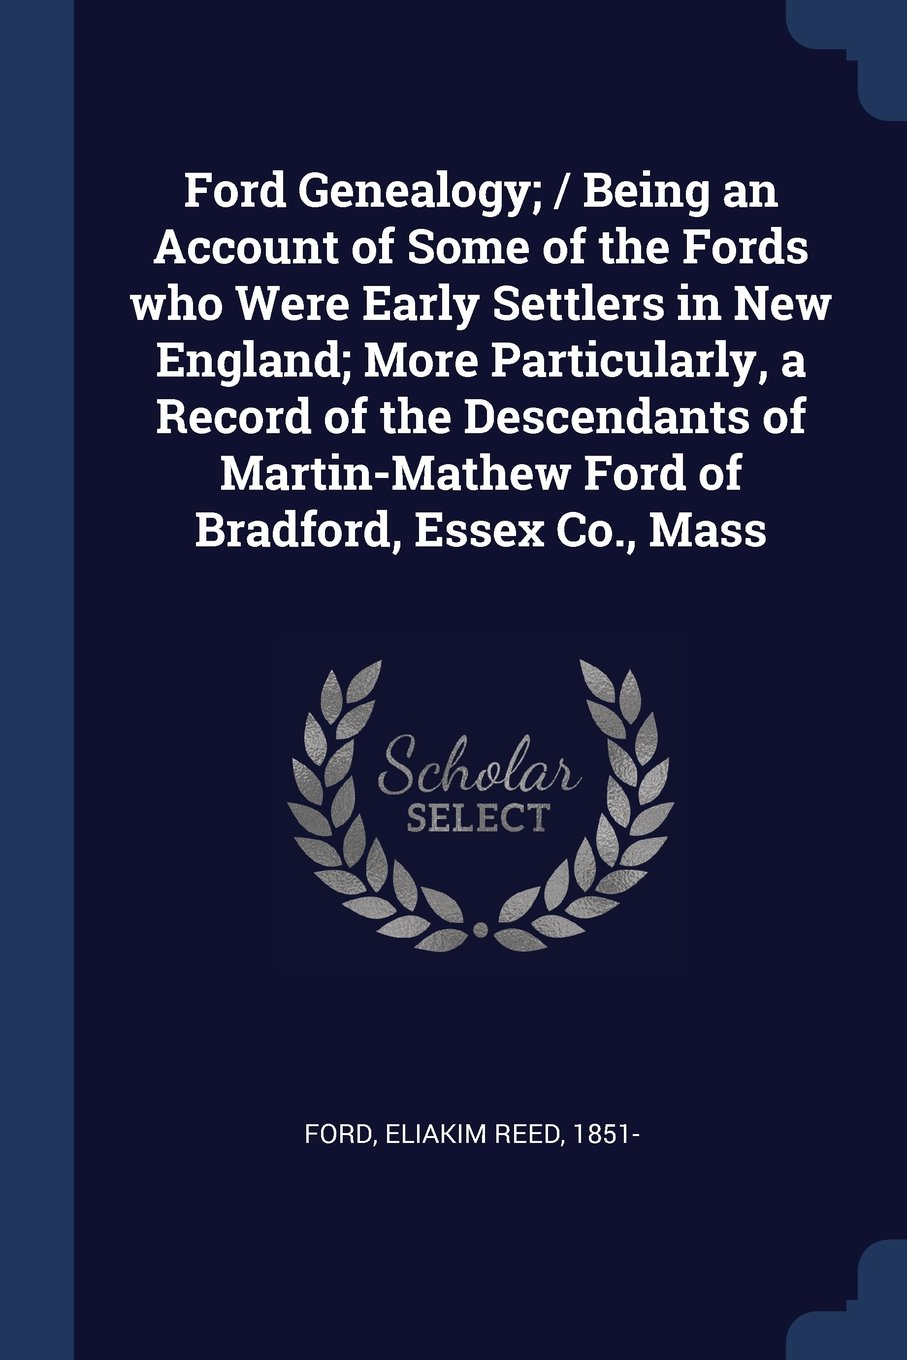 Download Ford Genealogy; / Being an Account of Some of the Fords who Were Early Settlers in New England; More Particularly, a Record of the Descendants of Martin-Mathew Ford of Bradford, Essex Co., Mass ebook